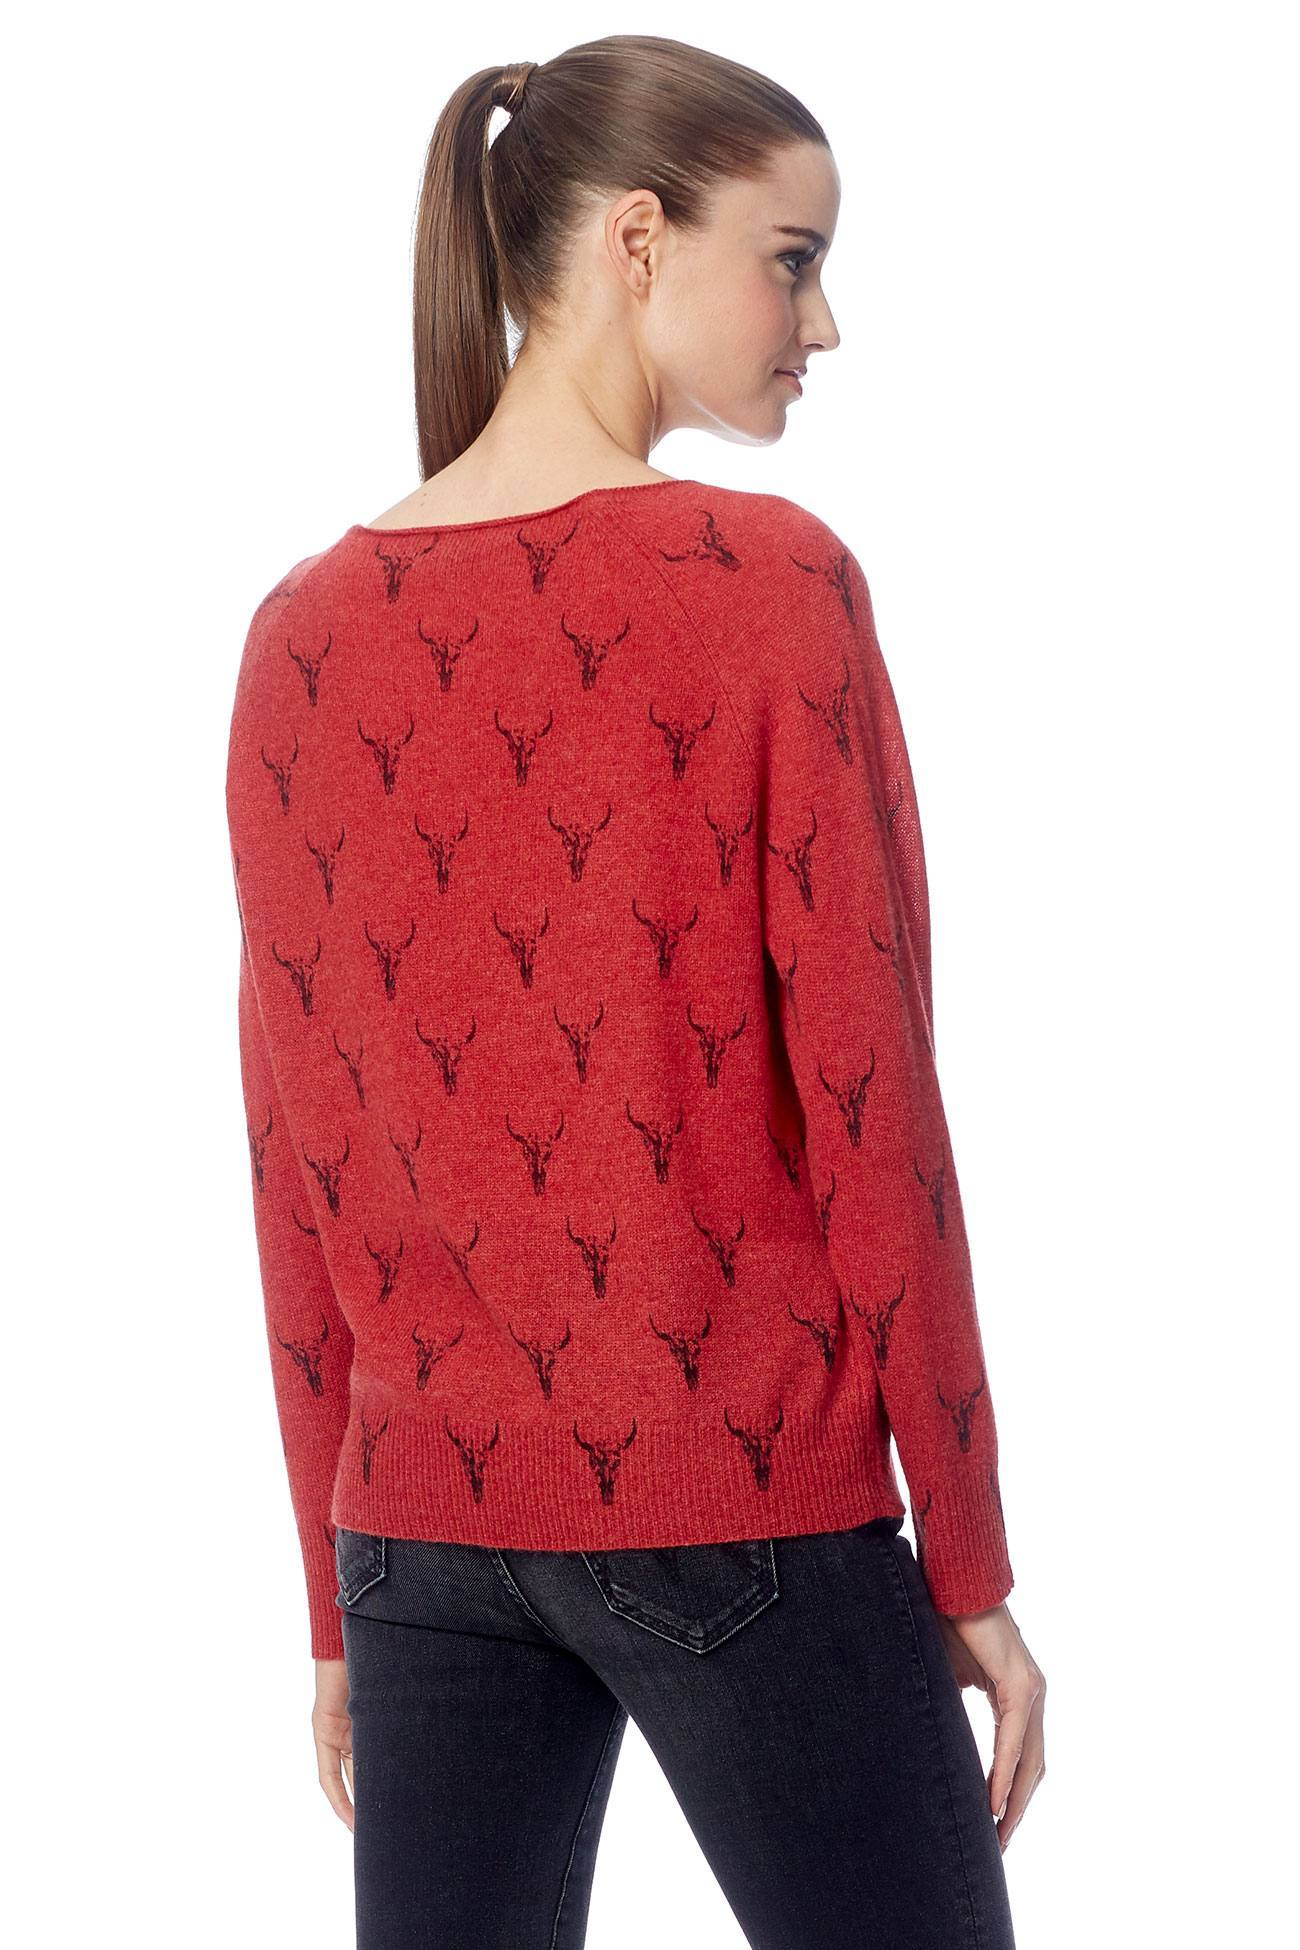 Dawson Boat Neck Sweater - Brick/Charcoal Print